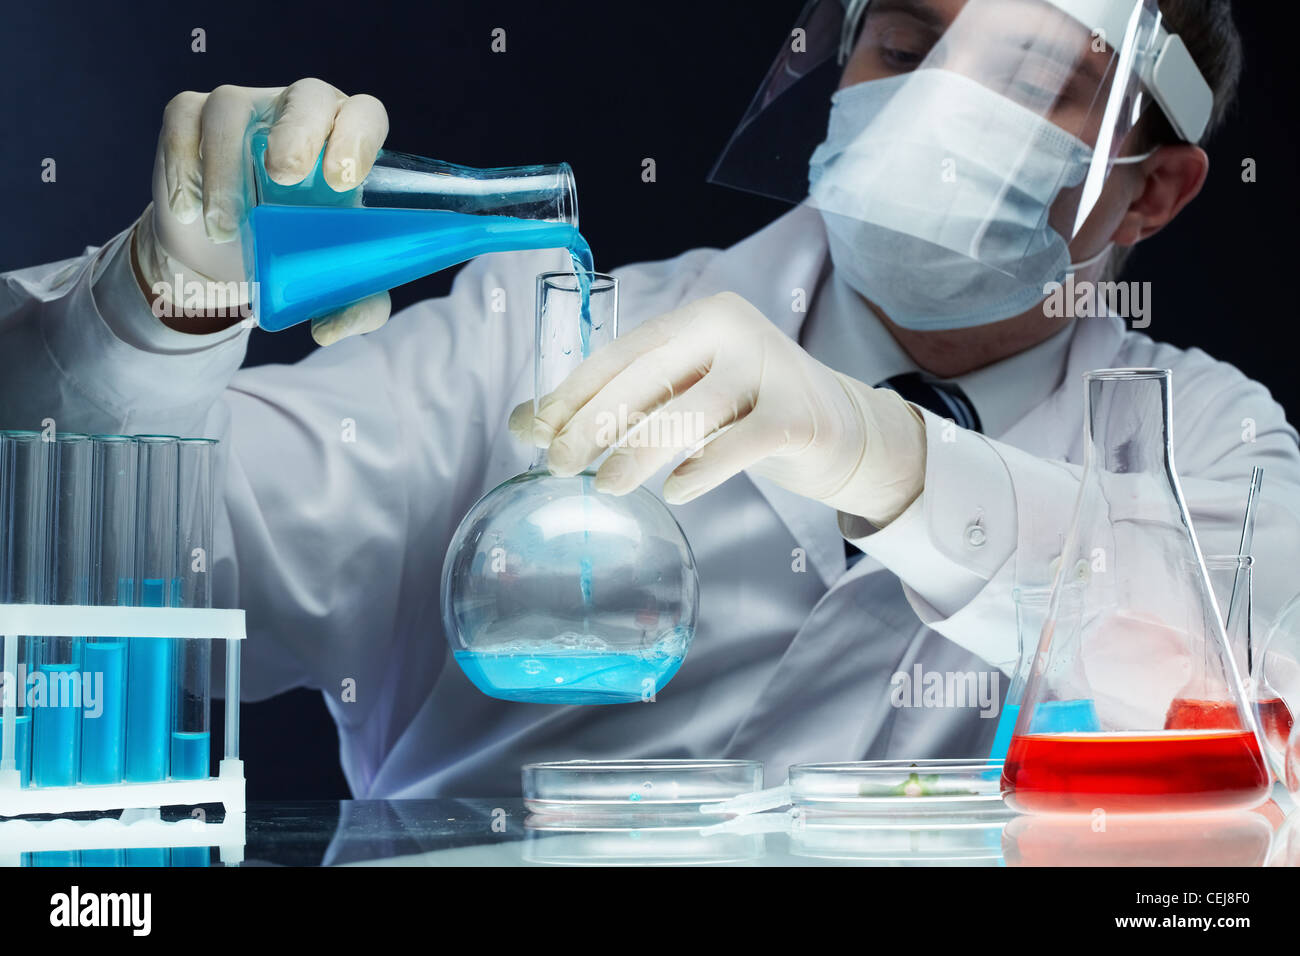 Scientist pouring fluid substances from one beaker into another - Stock Image